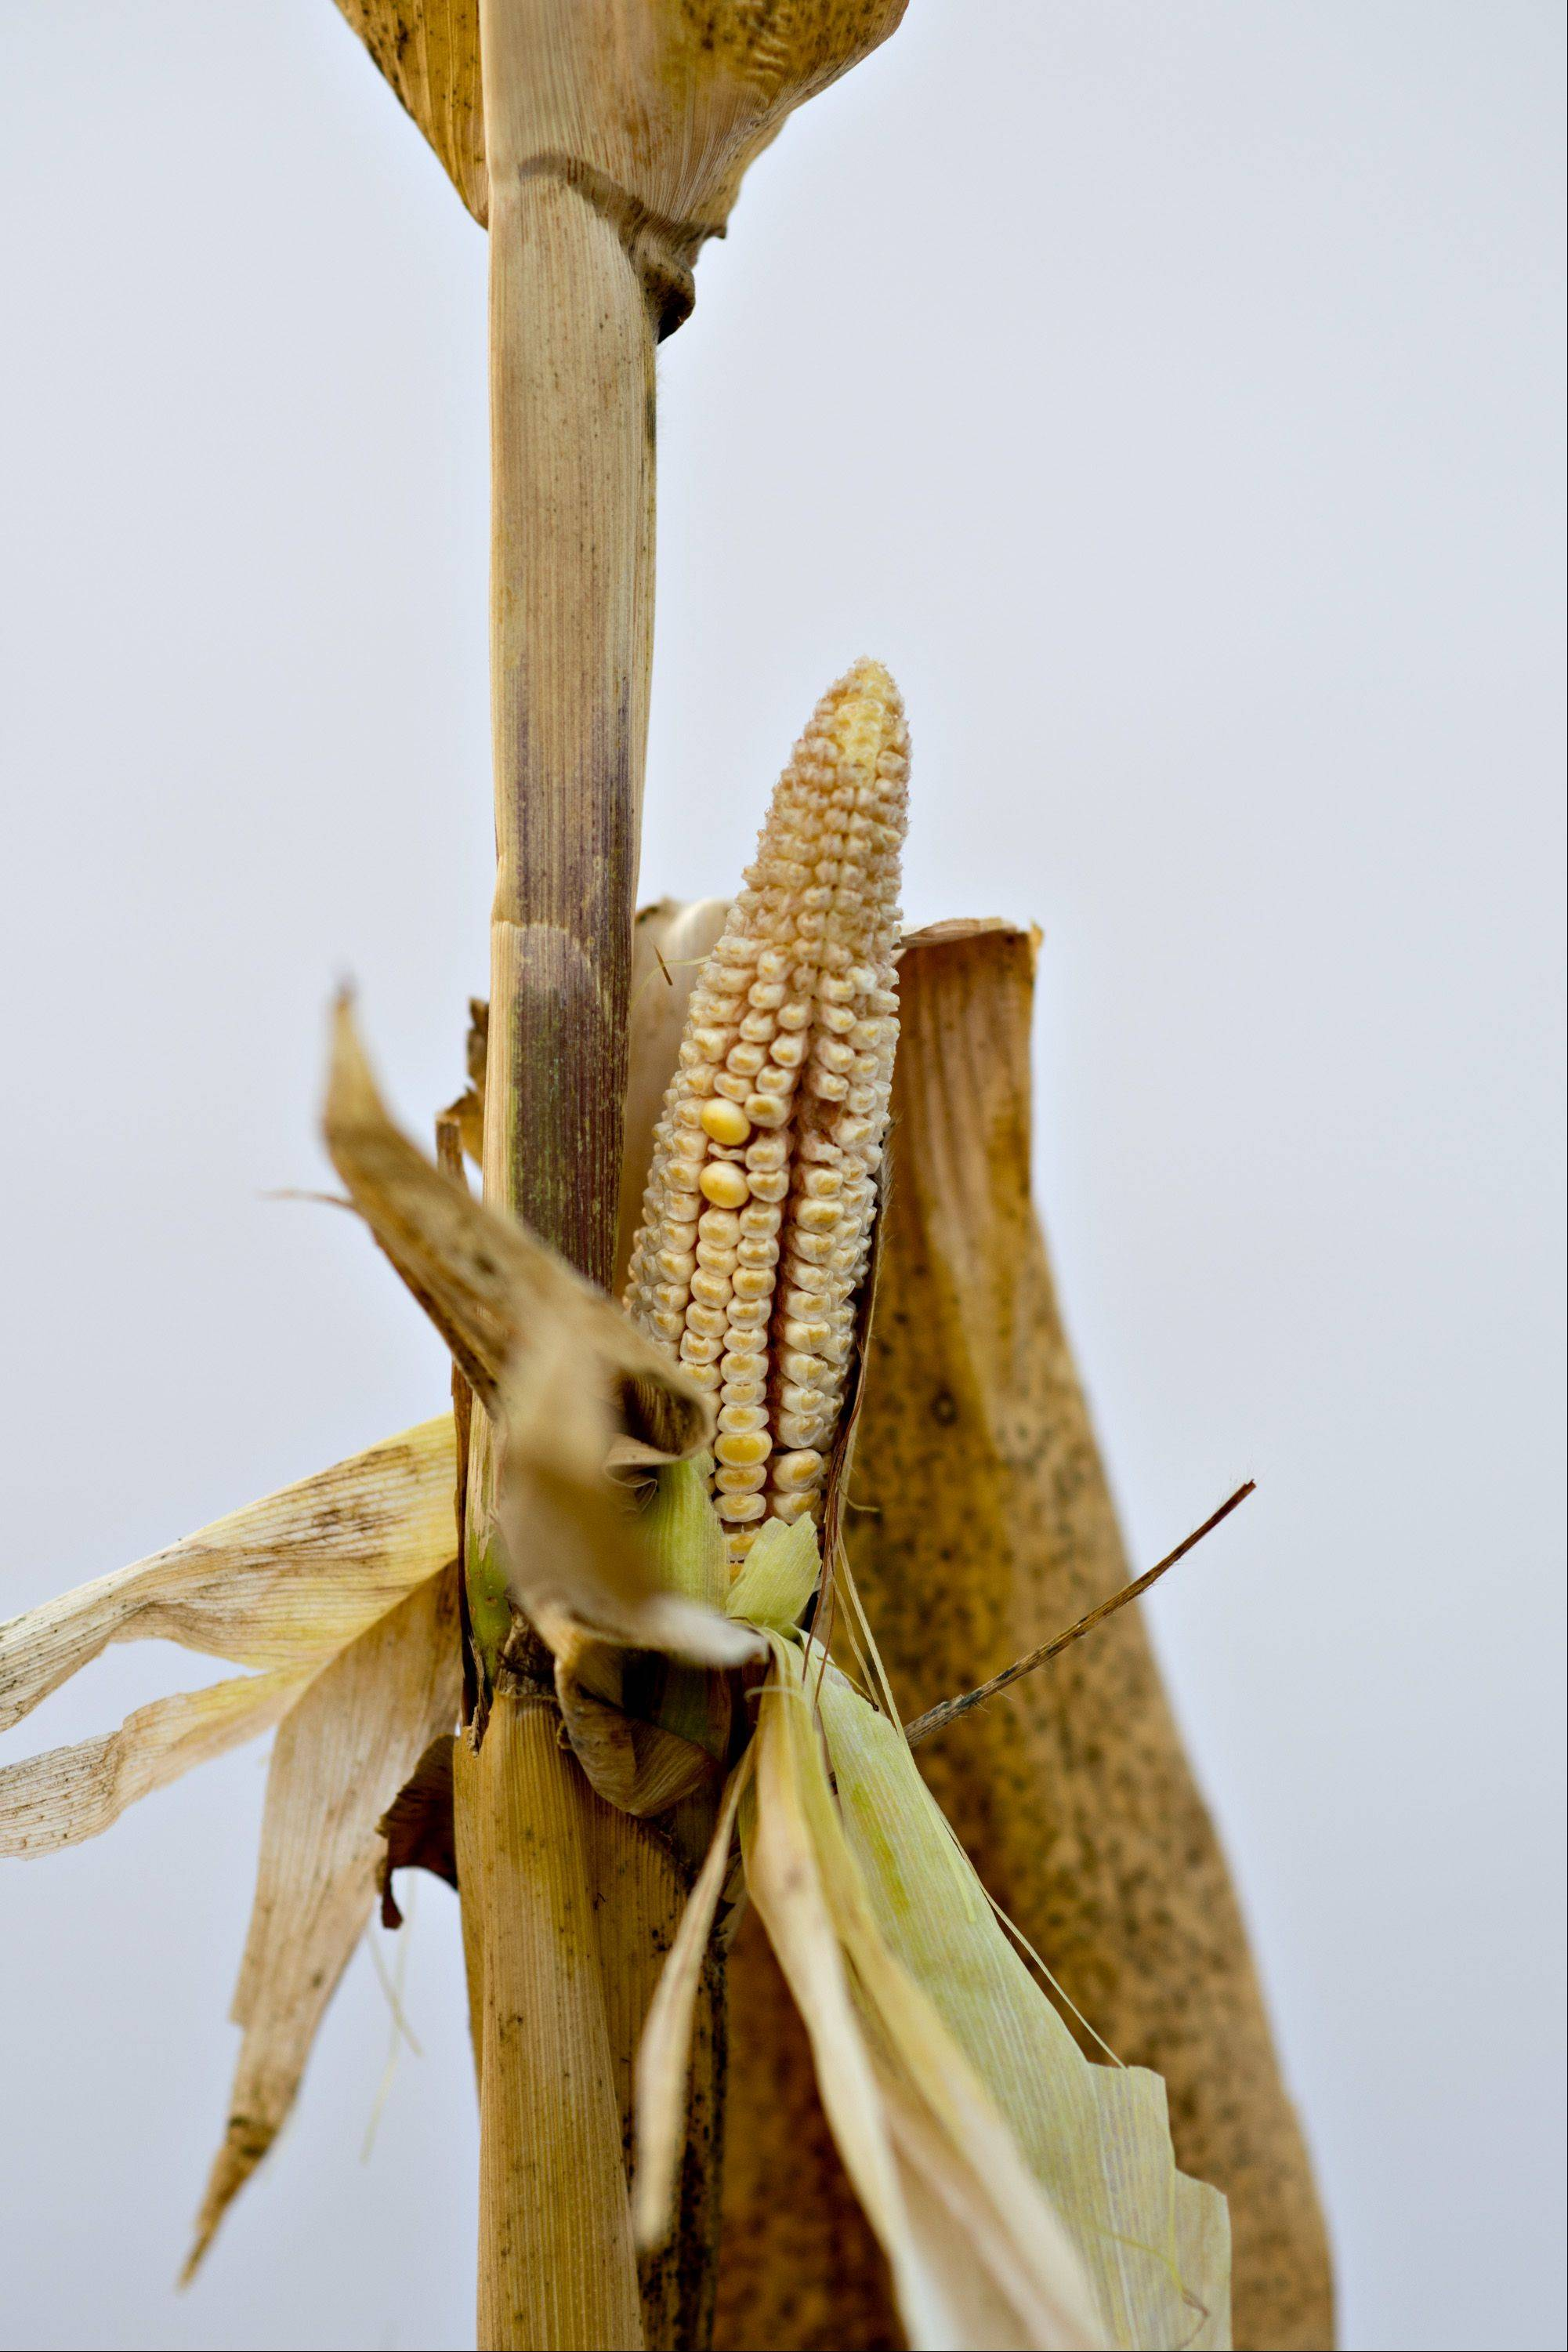 A severely underdeveloped ear of corn hangs on a corn plant damaged by extreme heat in downstate Carmi.